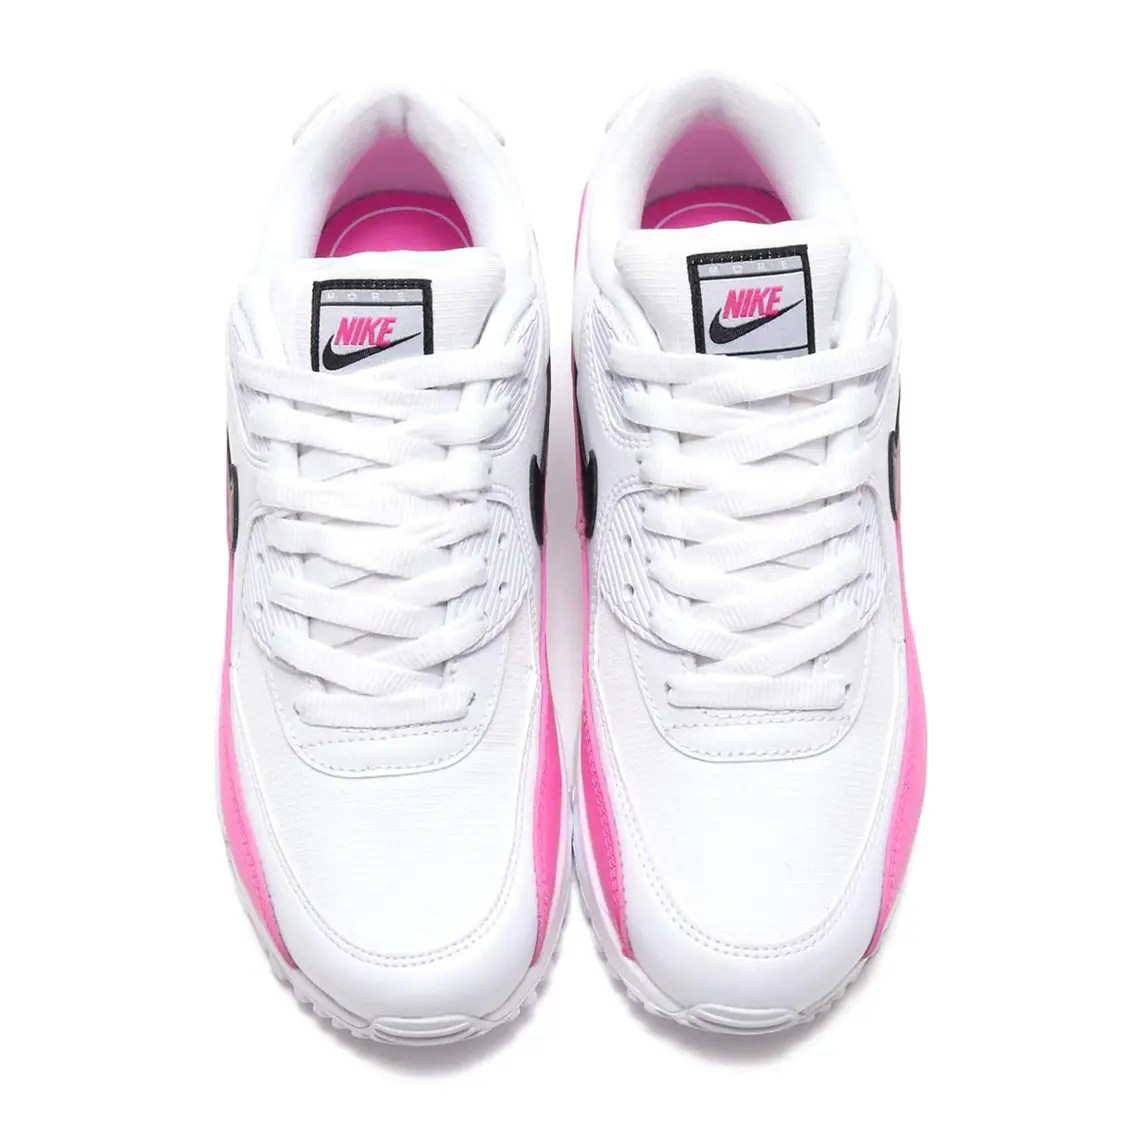 Nike-WMNS-Air-Max-90-China-Rose-BV0990-100-05